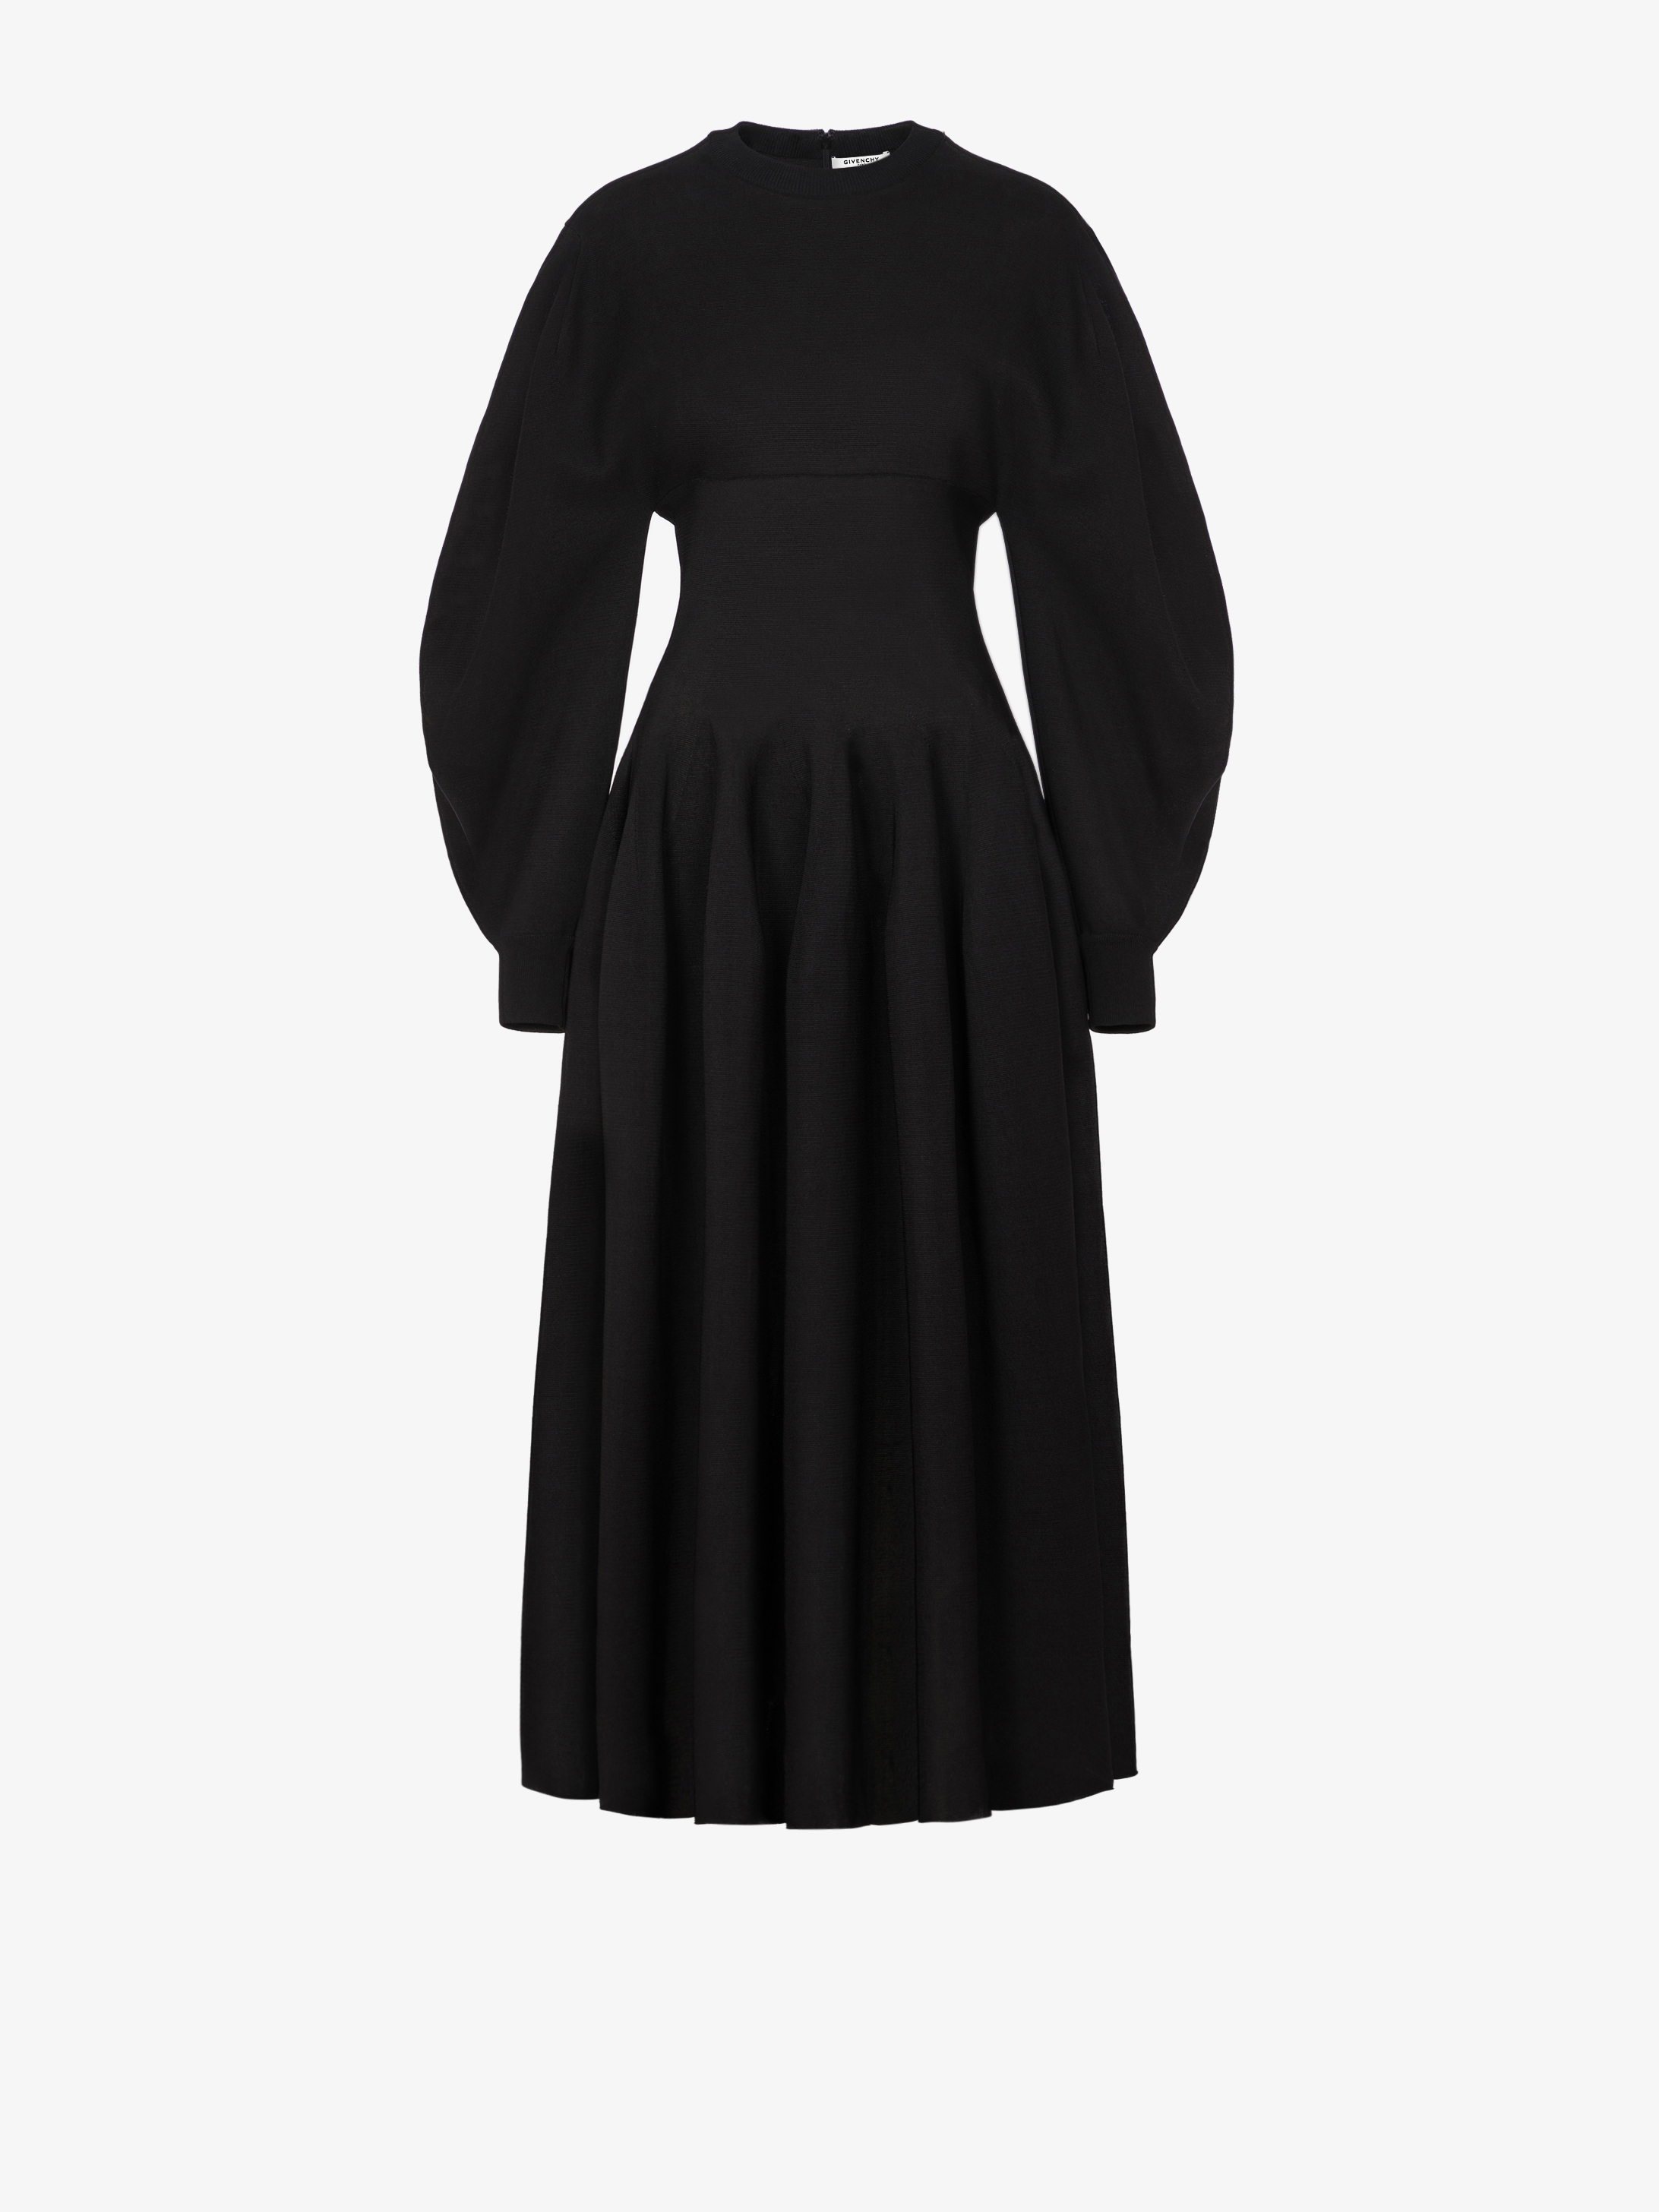 Mid-length dress in knit with puffed sleeves